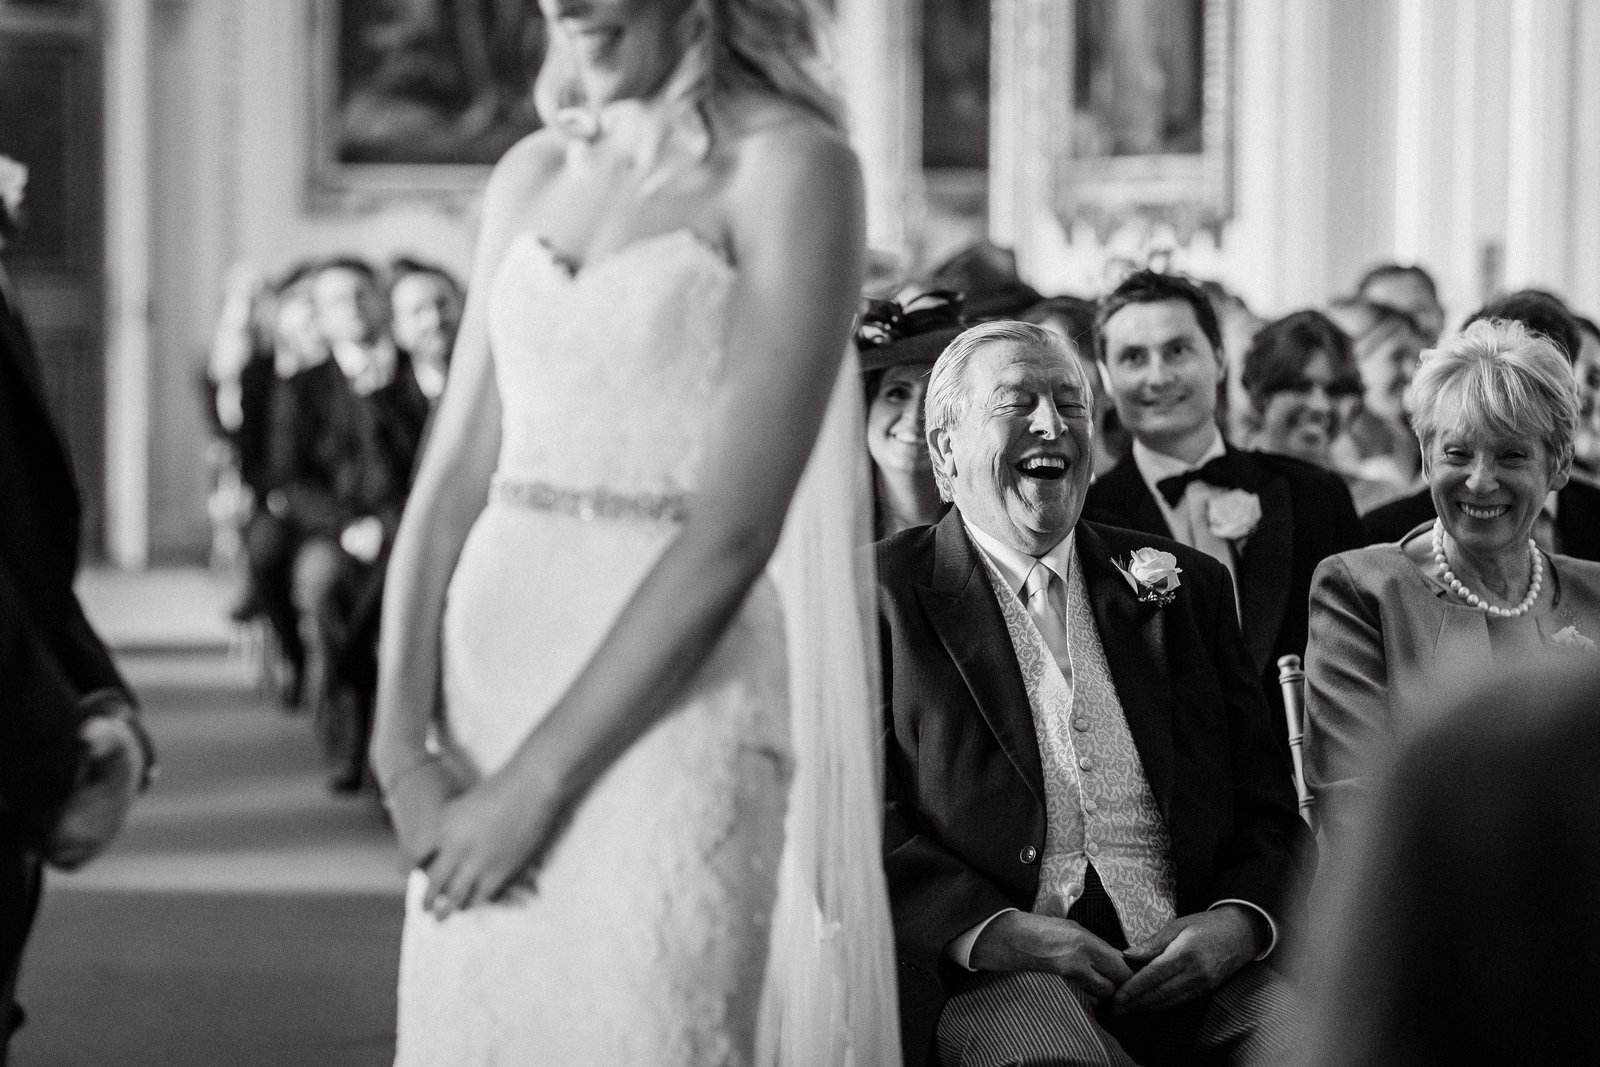 Black and white wedding photography at Goodwood House of the bride blurred in the foreground and the father of the bride behind laughing with emotion during the ceremony